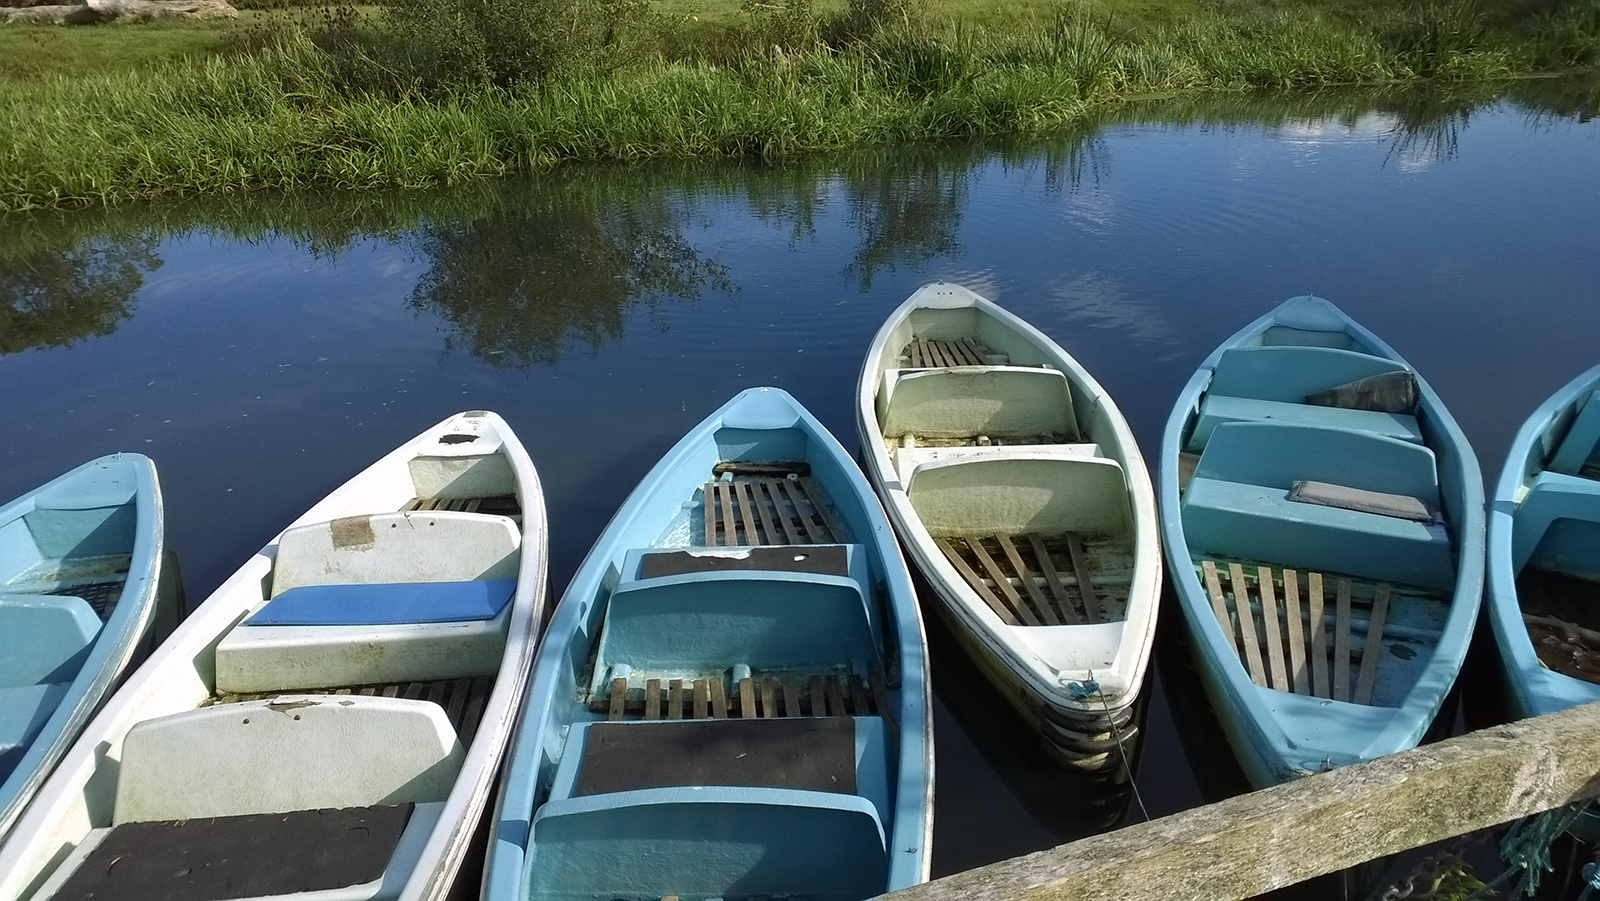 River boats in Sussex, UK 2015. Photograph by Tanya Clarke